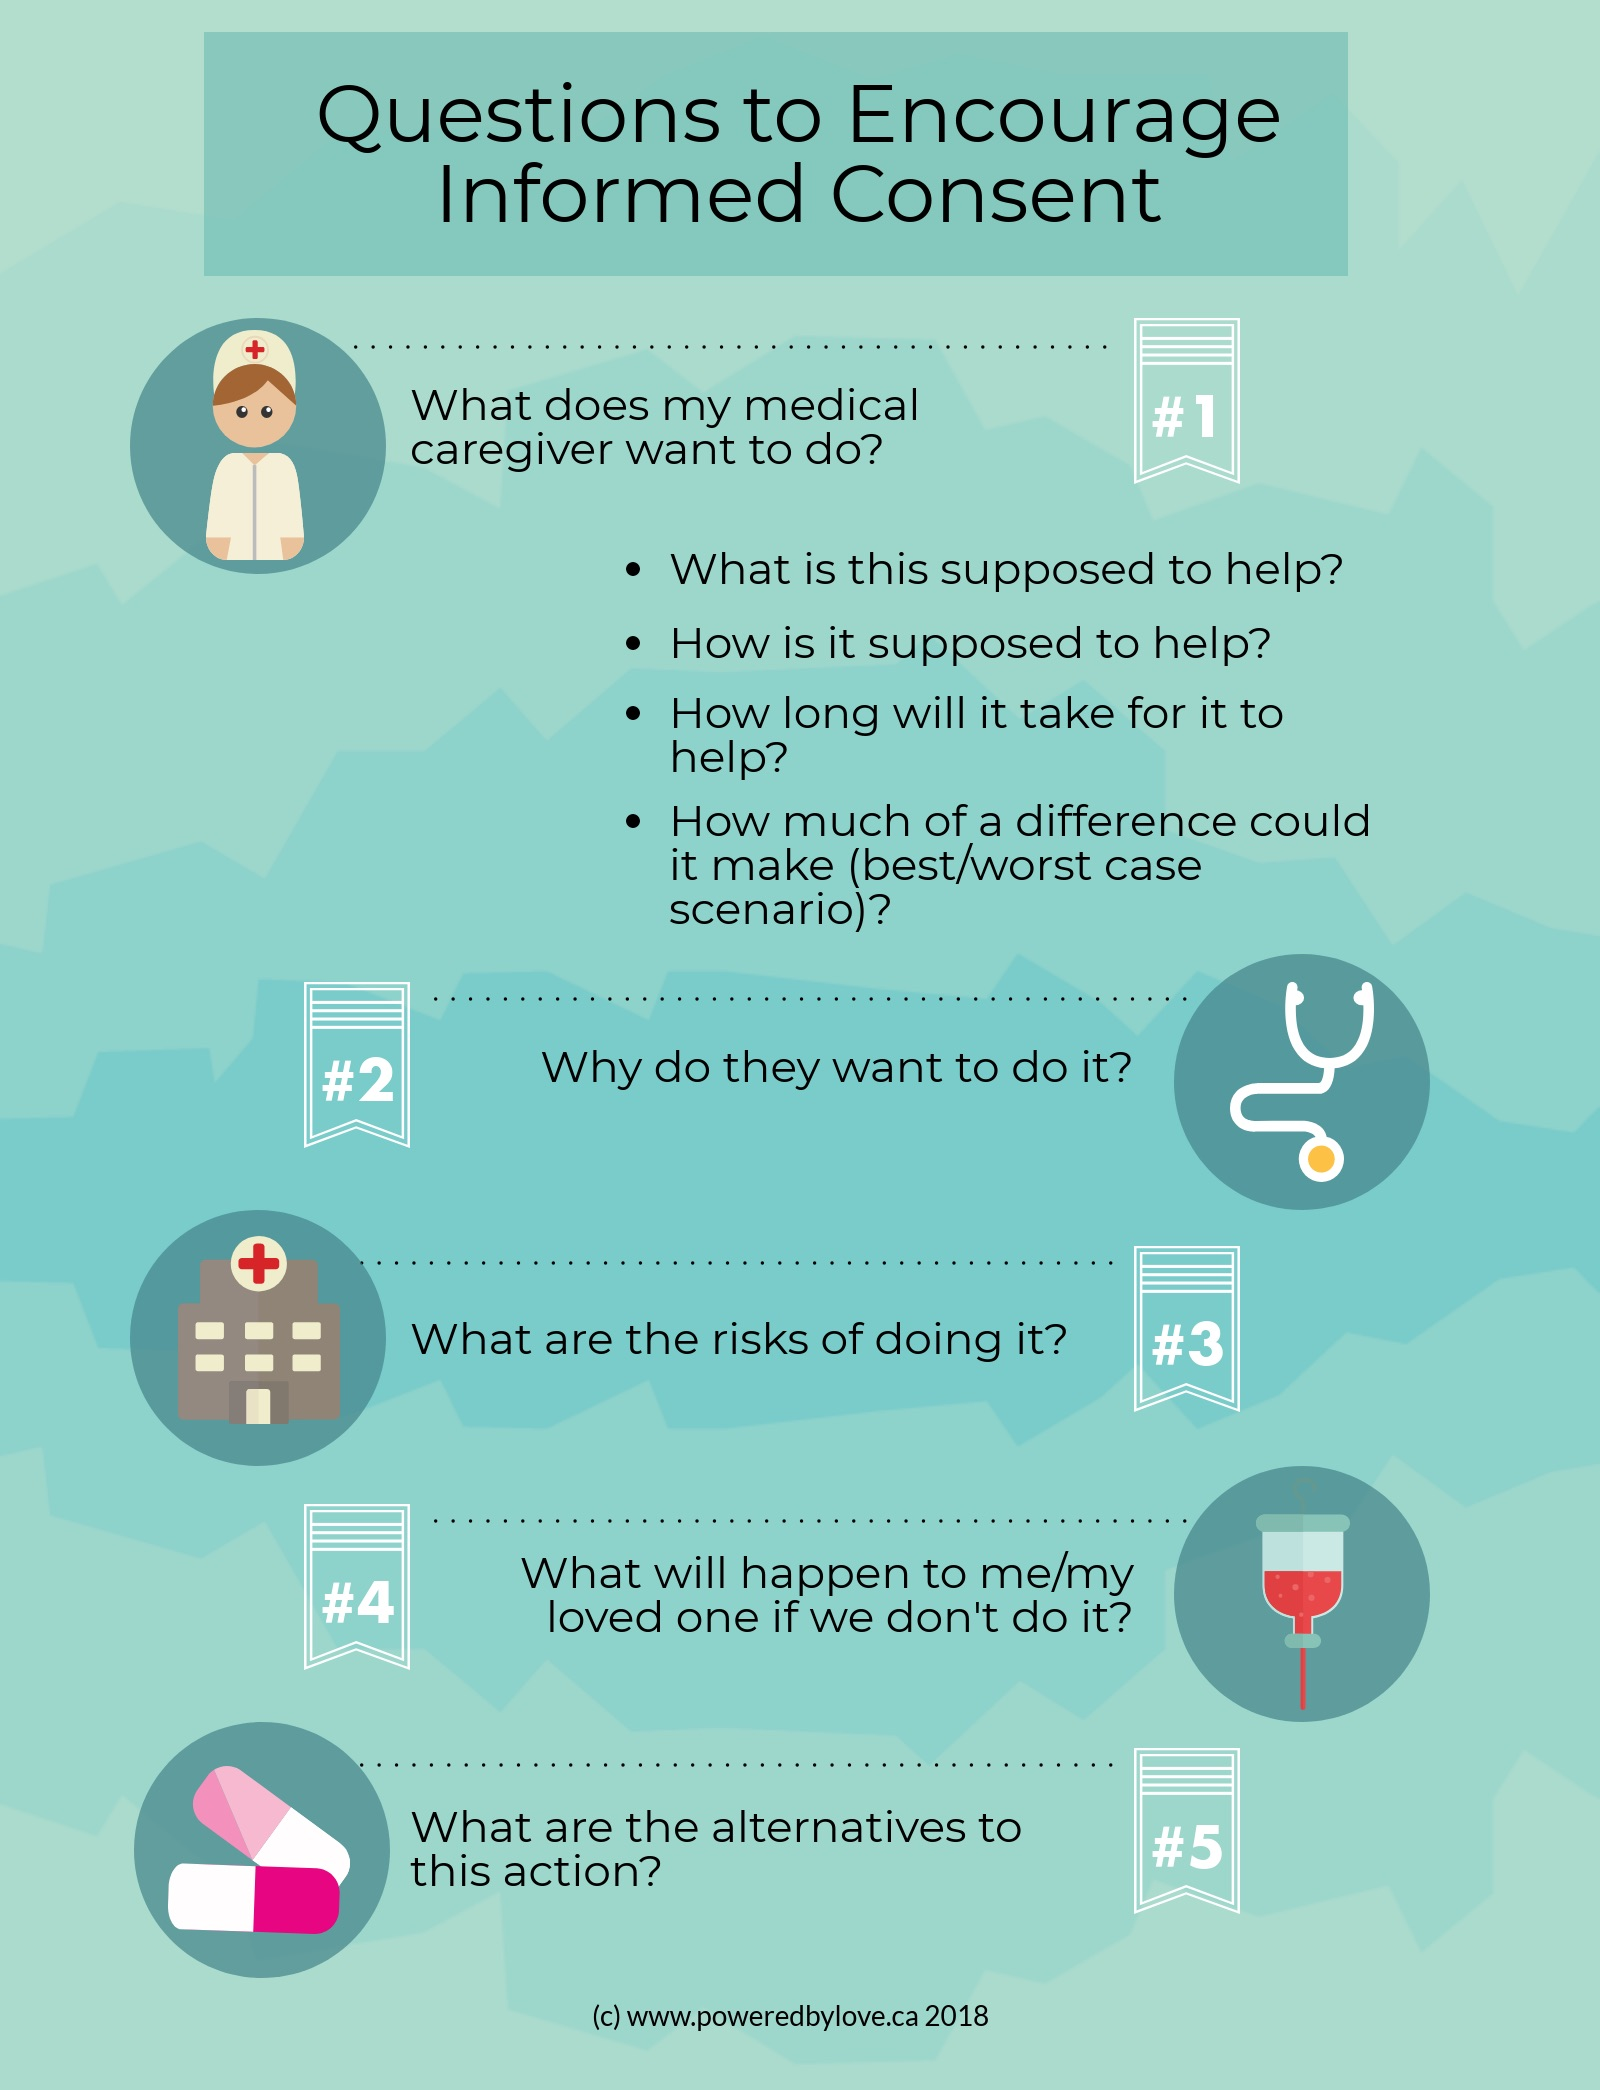 Questions to Encourage Informed Consent - Infographic